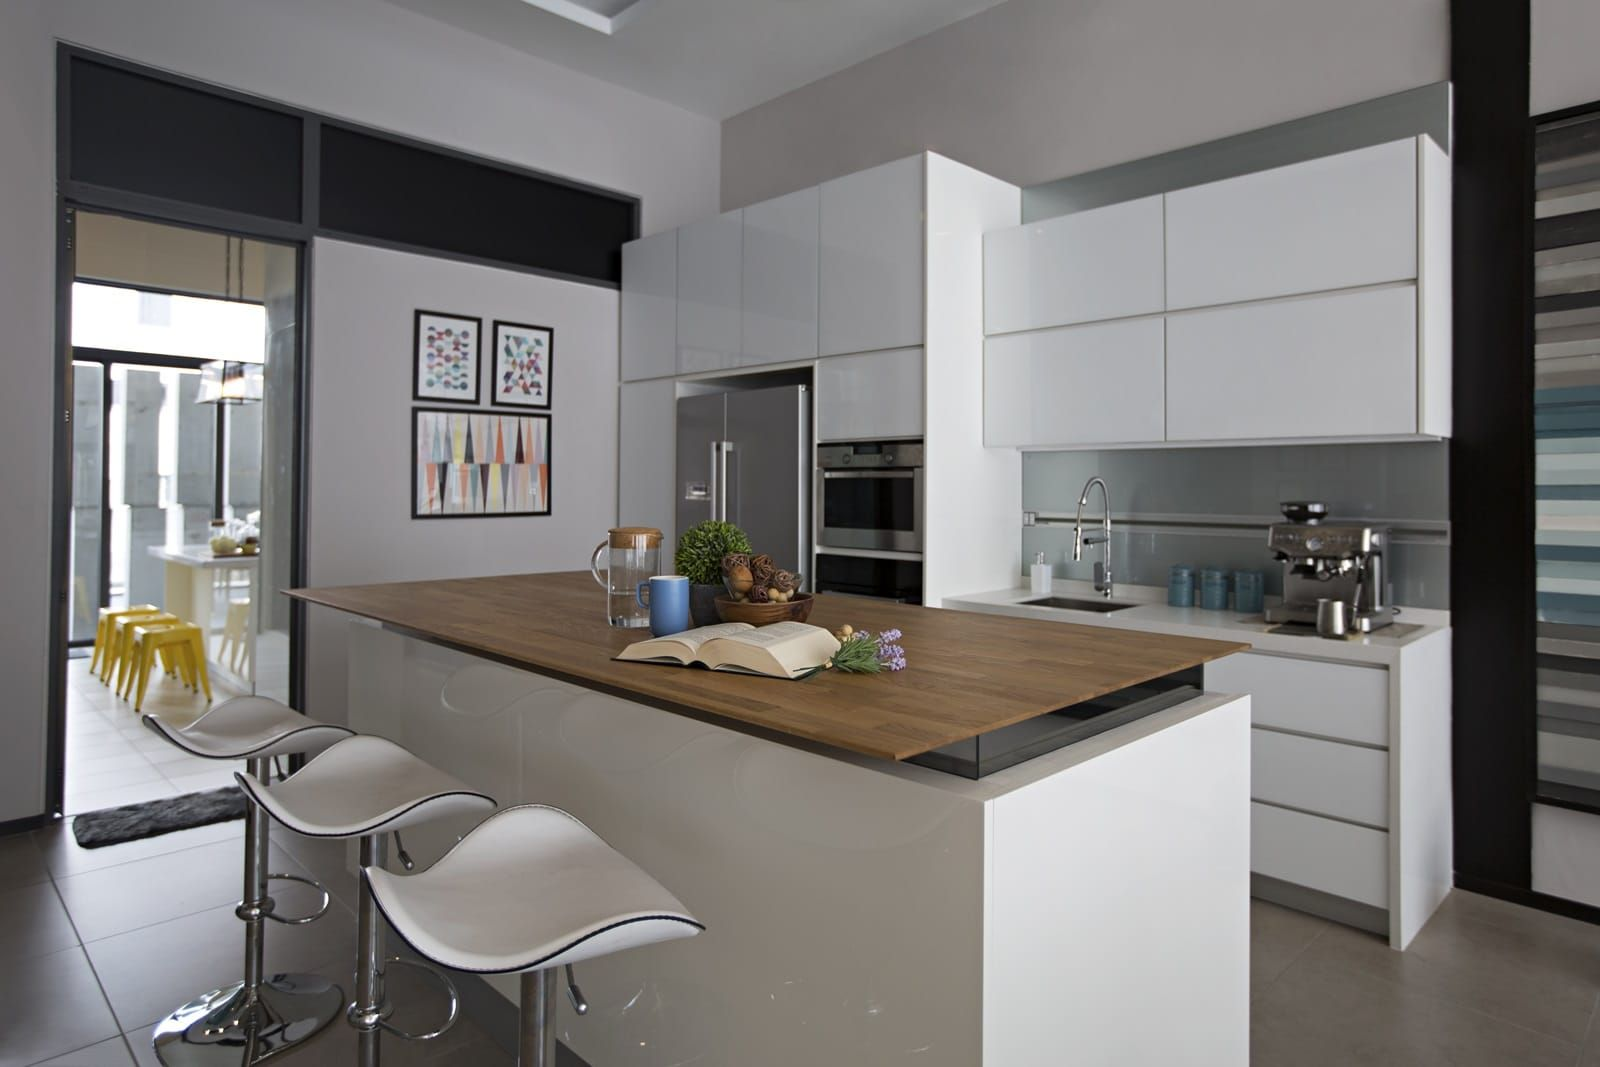 modern terrace house dry kitchen and island by turn design on home interior design kitchen id=99584